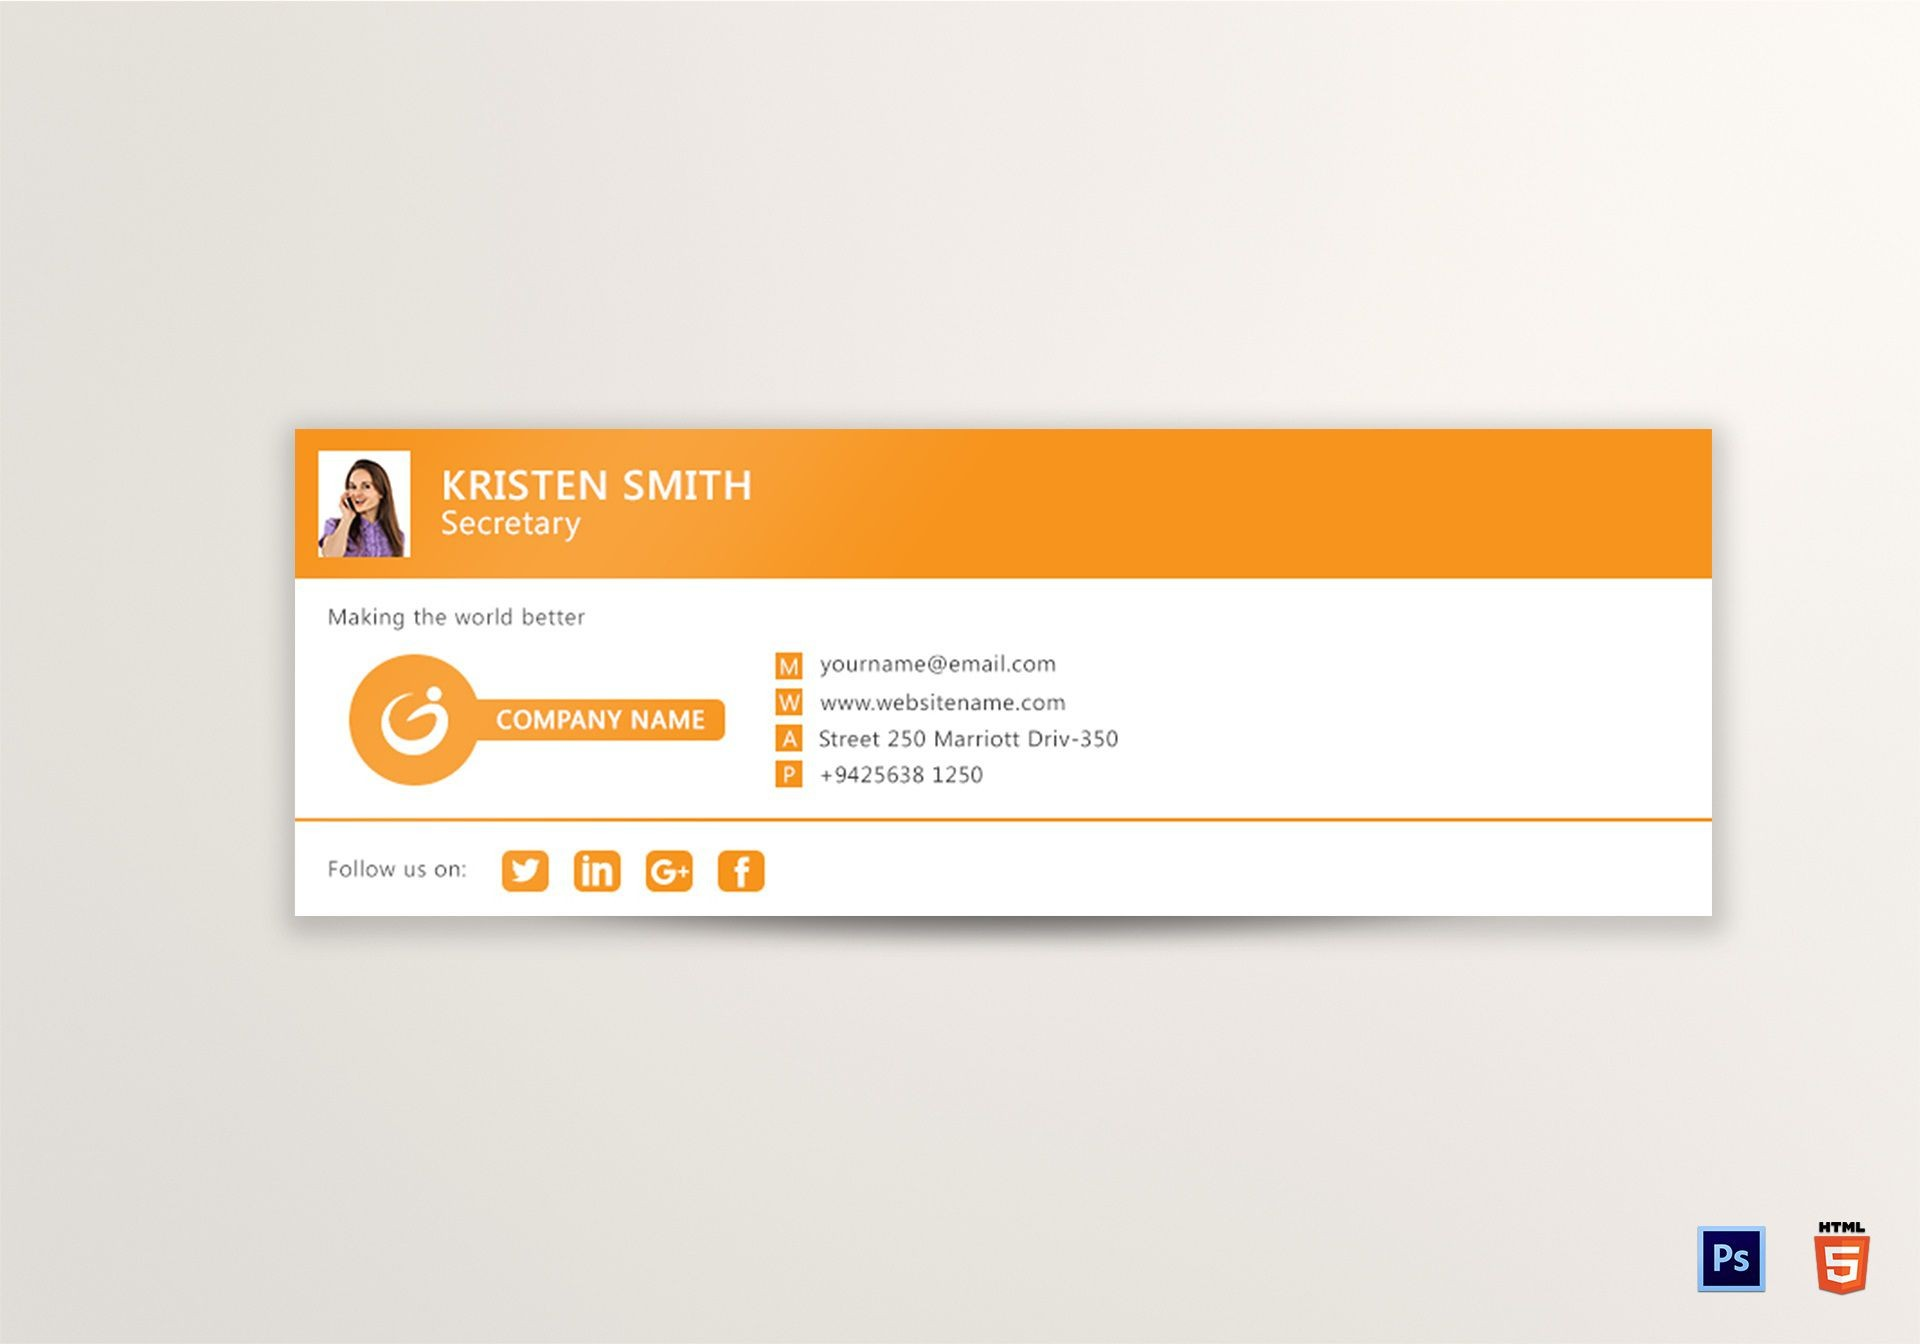 004 Imposing Outlook Email Signature Template High Def  Example Free Download Best1920